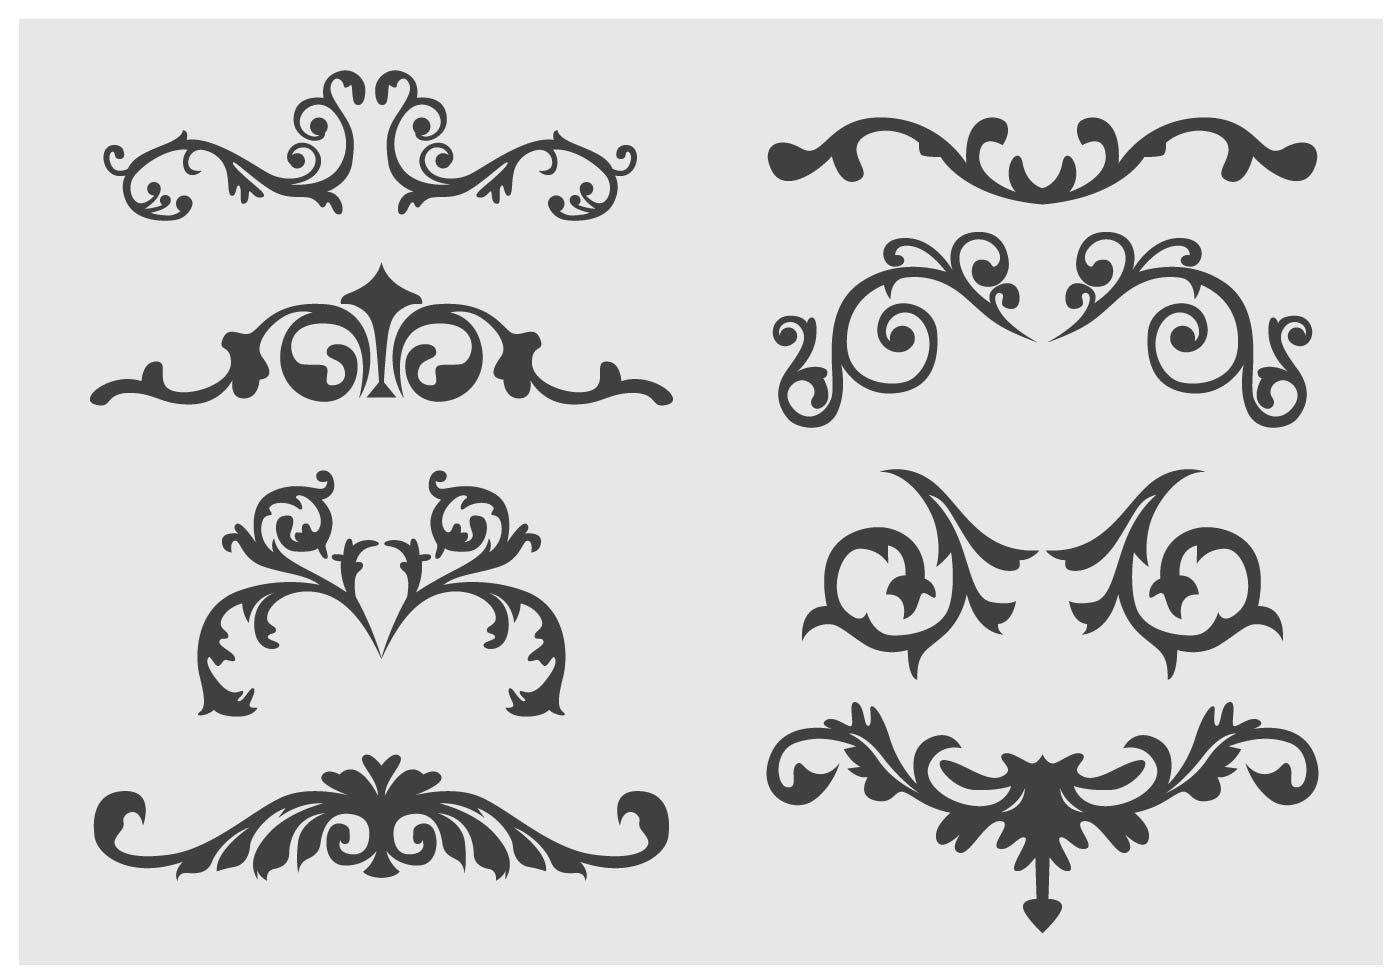 freeuse Western flourish clipart. Pin on horses things